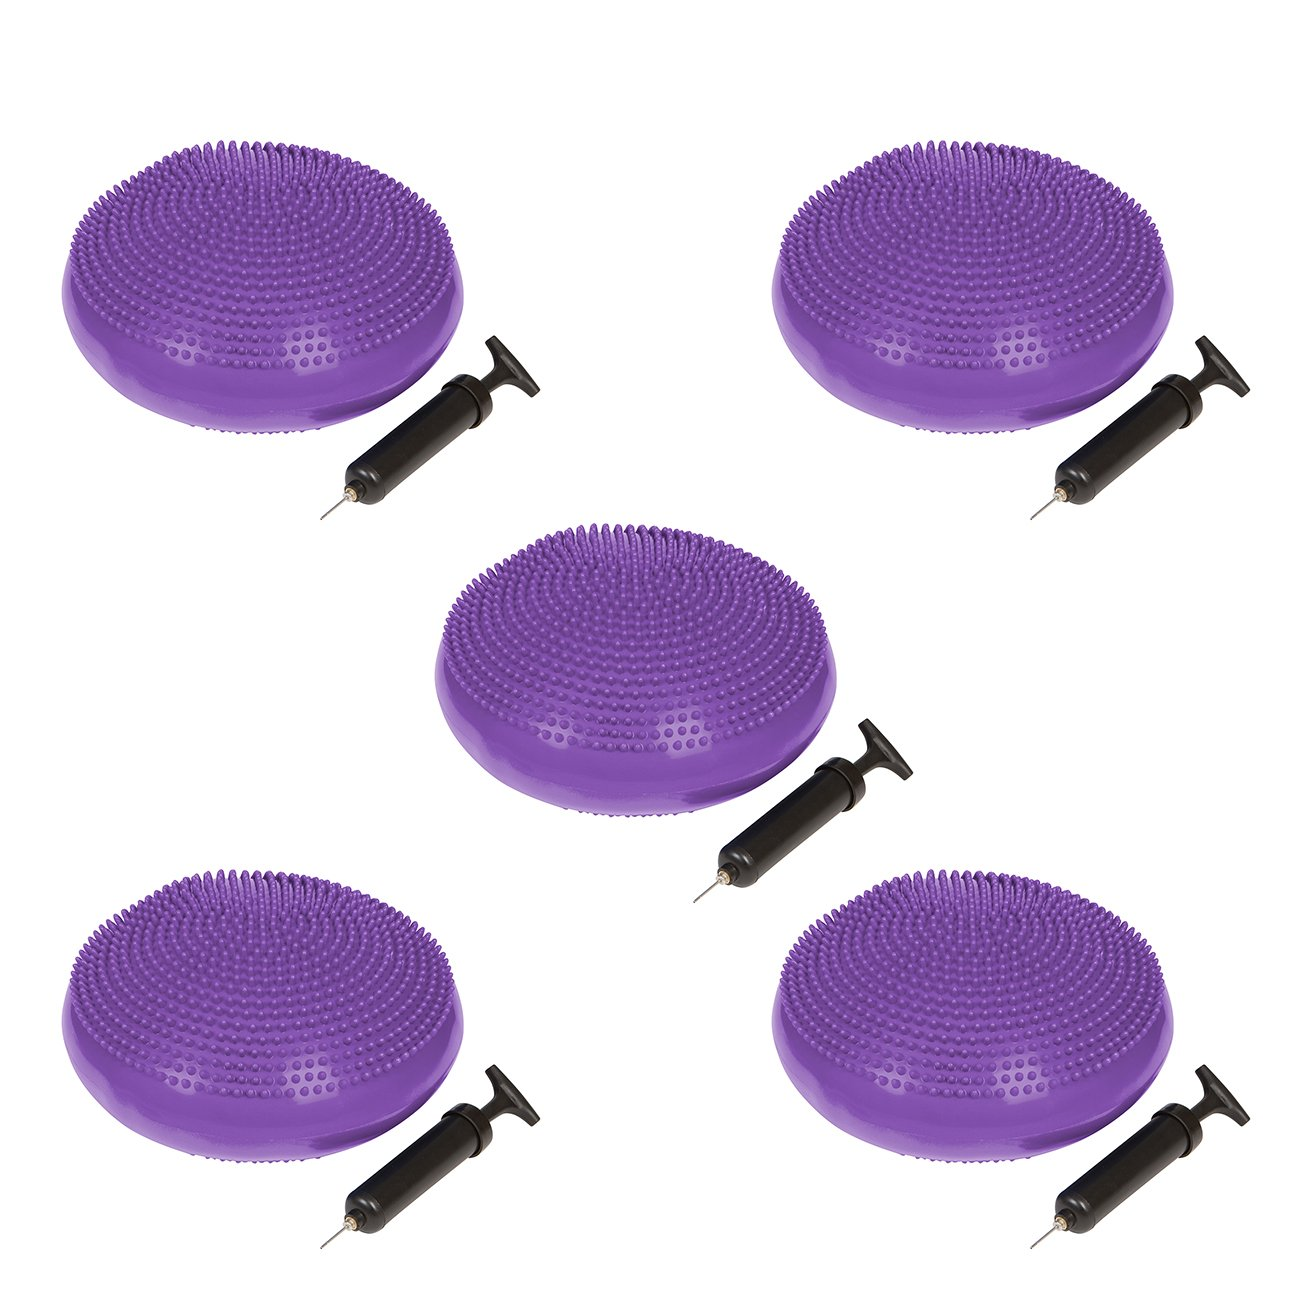 Trademark Innovations PVC Fitness and Balance Disc - 13-Inch Diameter - Set of 5 - (Purple)